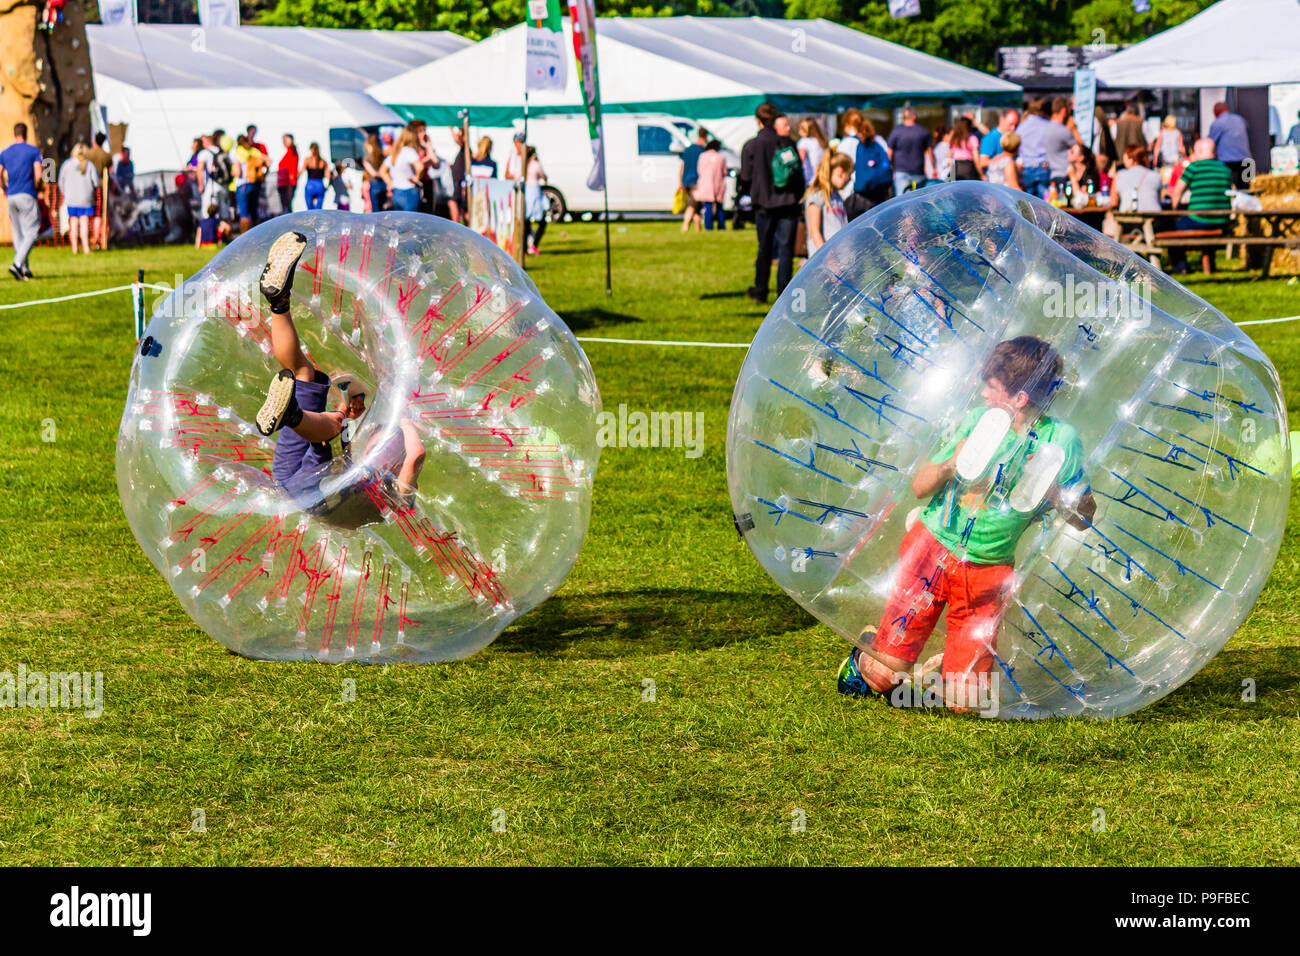 Two children playing in inflatable balls at Northumberland County Show, Stocksfield, Northumberland, UK. - Stock Image